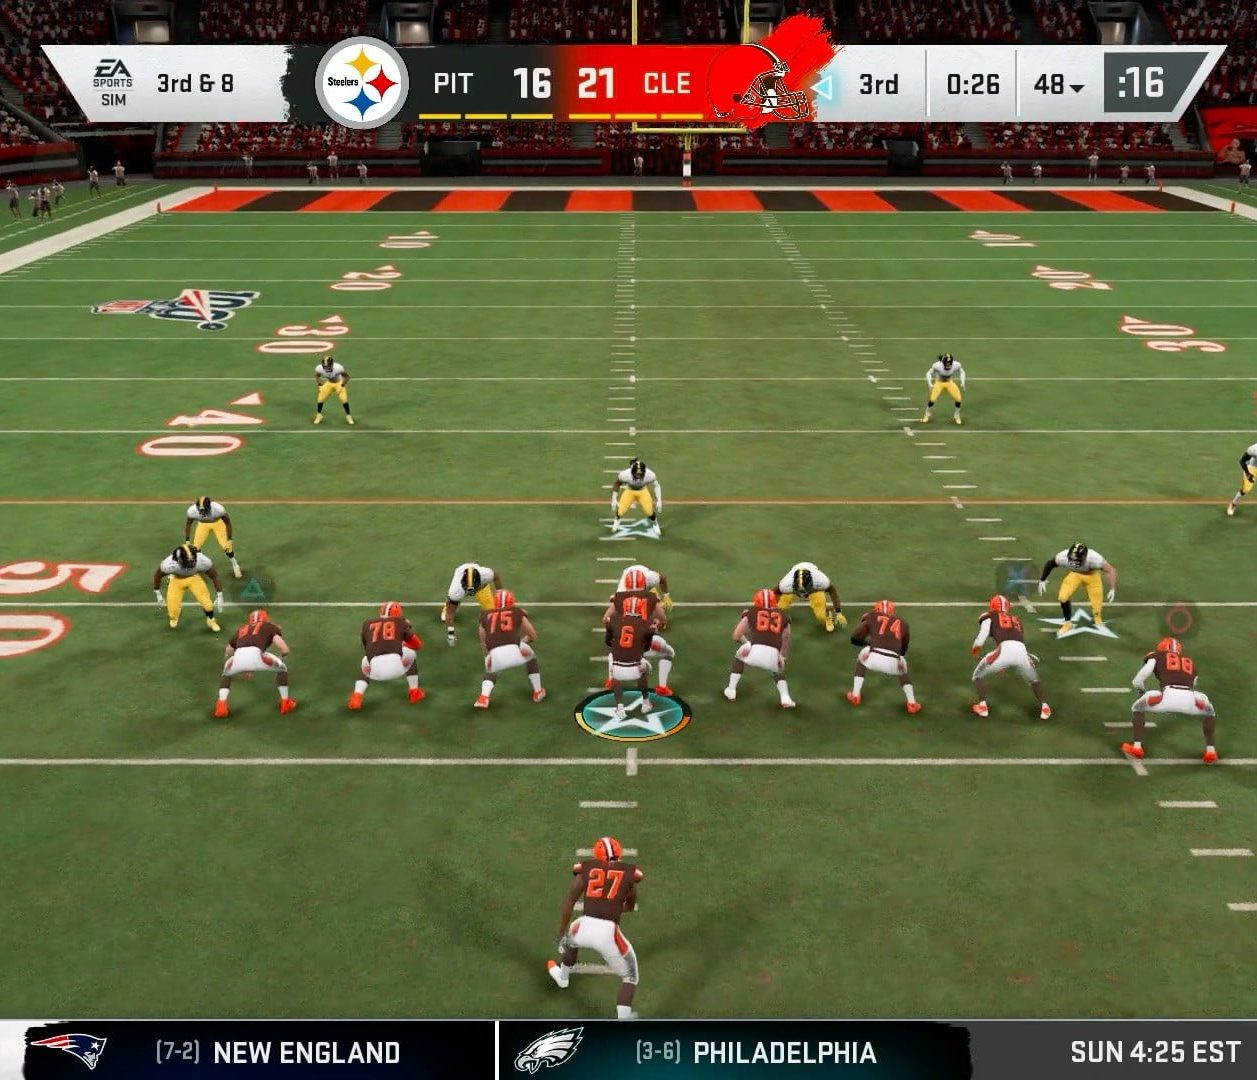 madden nfl 20 beginners guide 6 e1604400470988 Video Game Urban Legends That'll Give You Nightmares